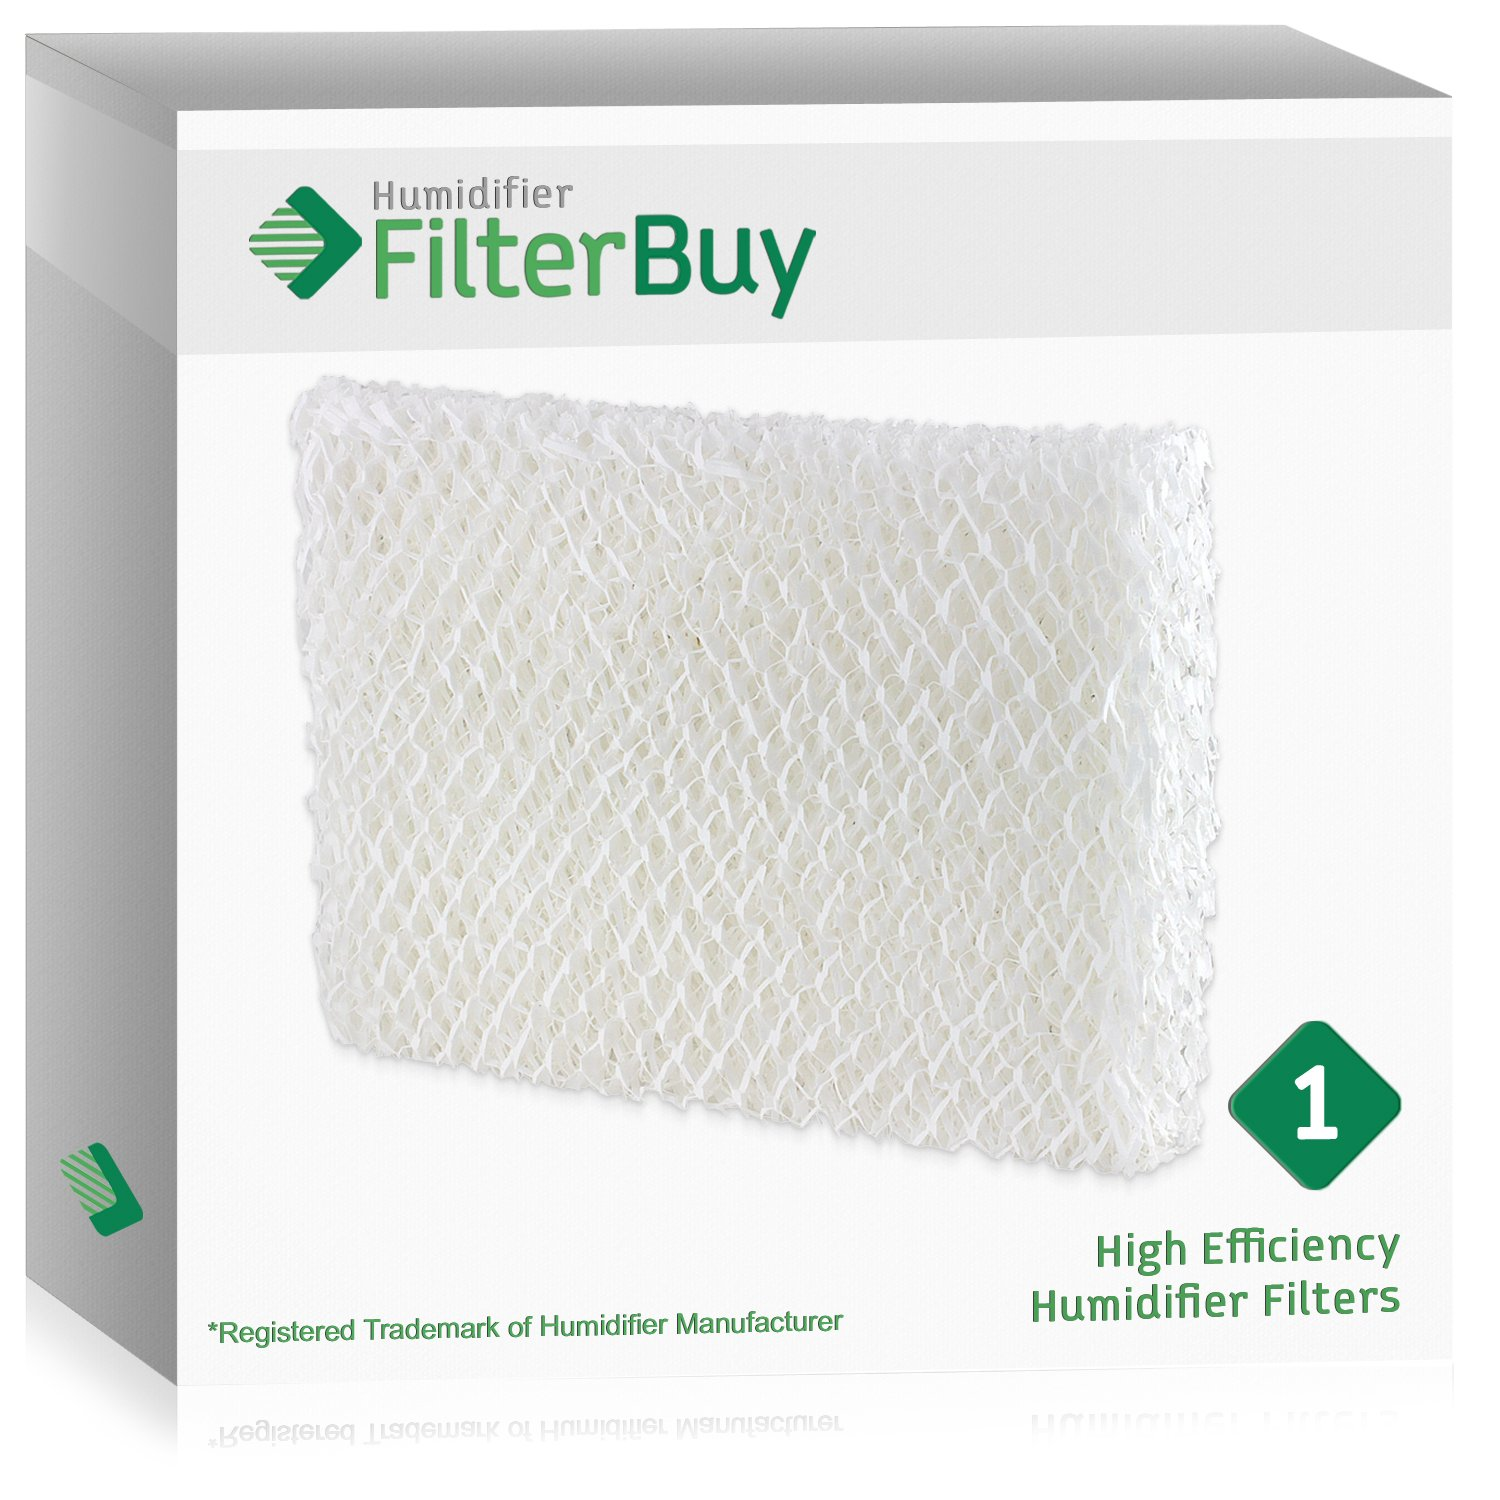 FilterBuy Humidifier Wick Replacement Filter for Lasko Humidifiers. Compares to Lasko Part # THF 8, THF-8, THF8.